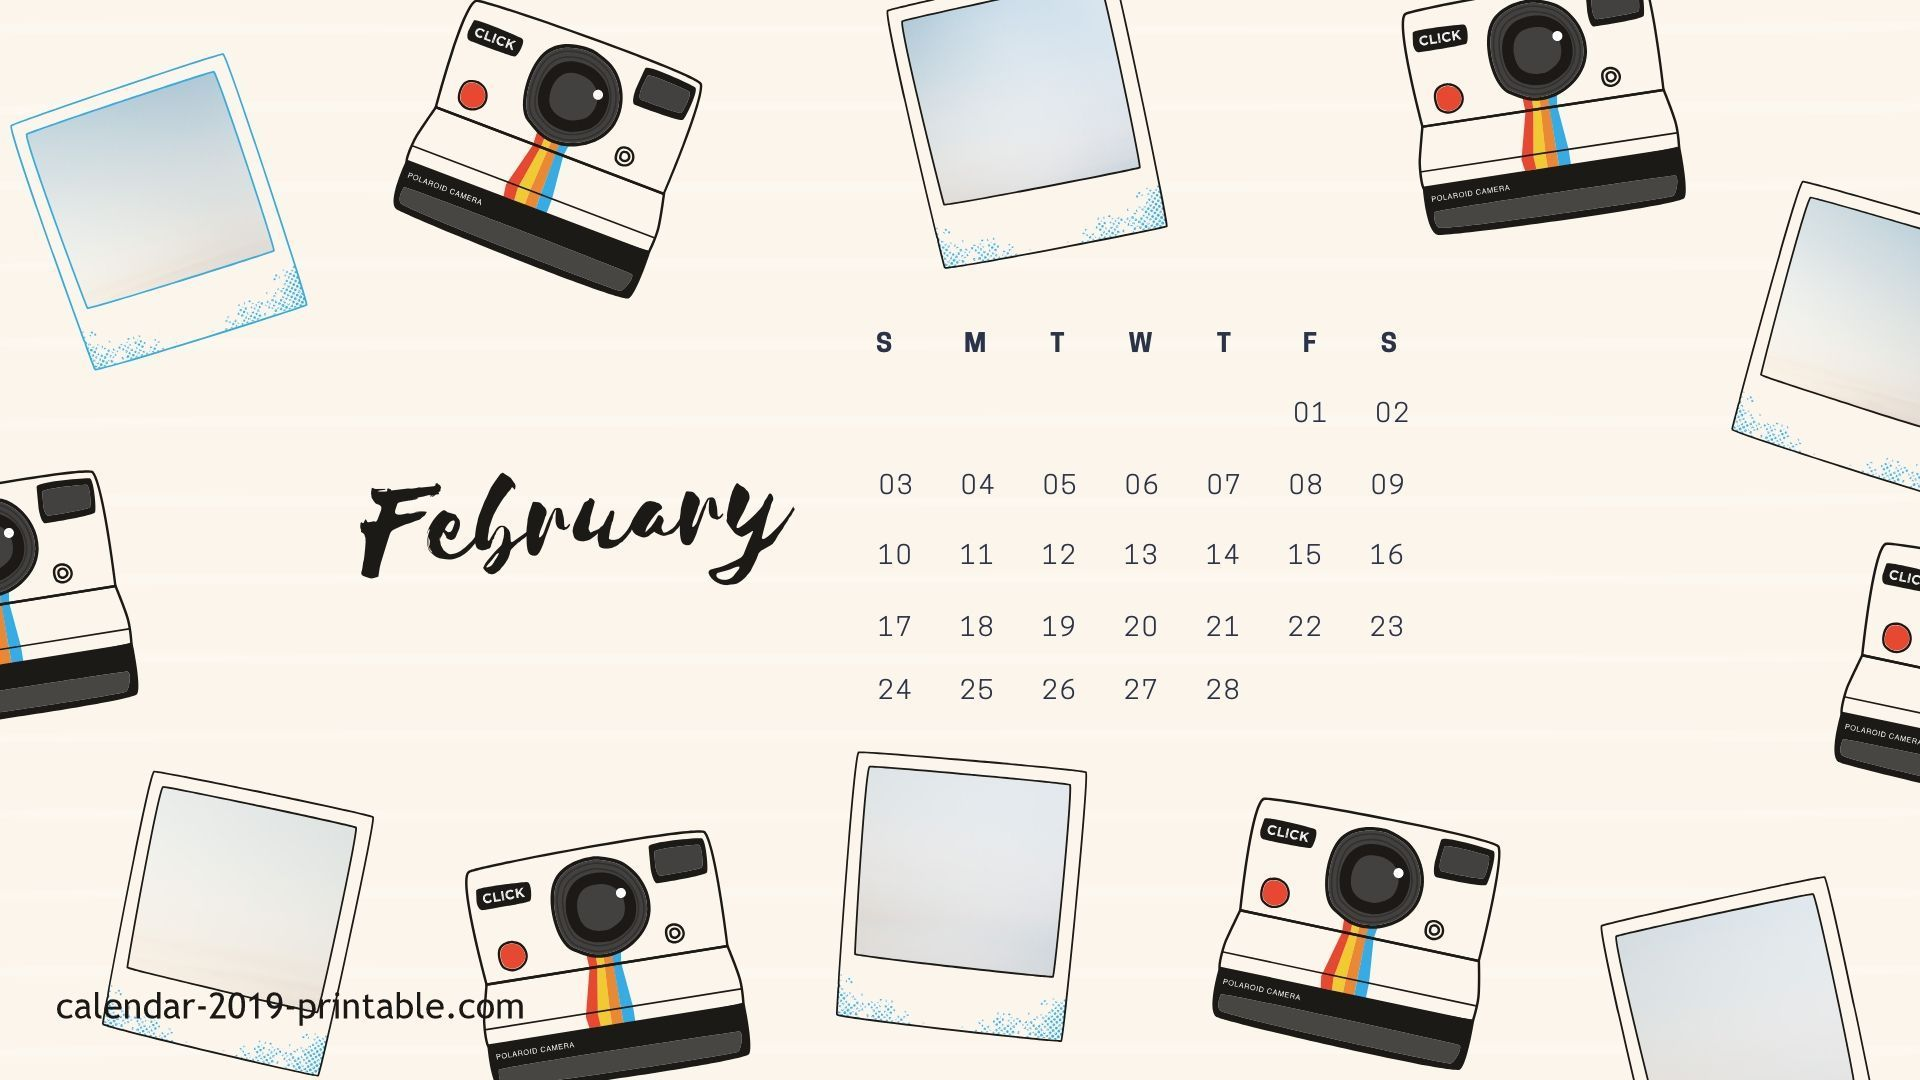 Electronic February 2019 Calendar free february 2019 calendar wallpaper | 2019 Calendars in 2019